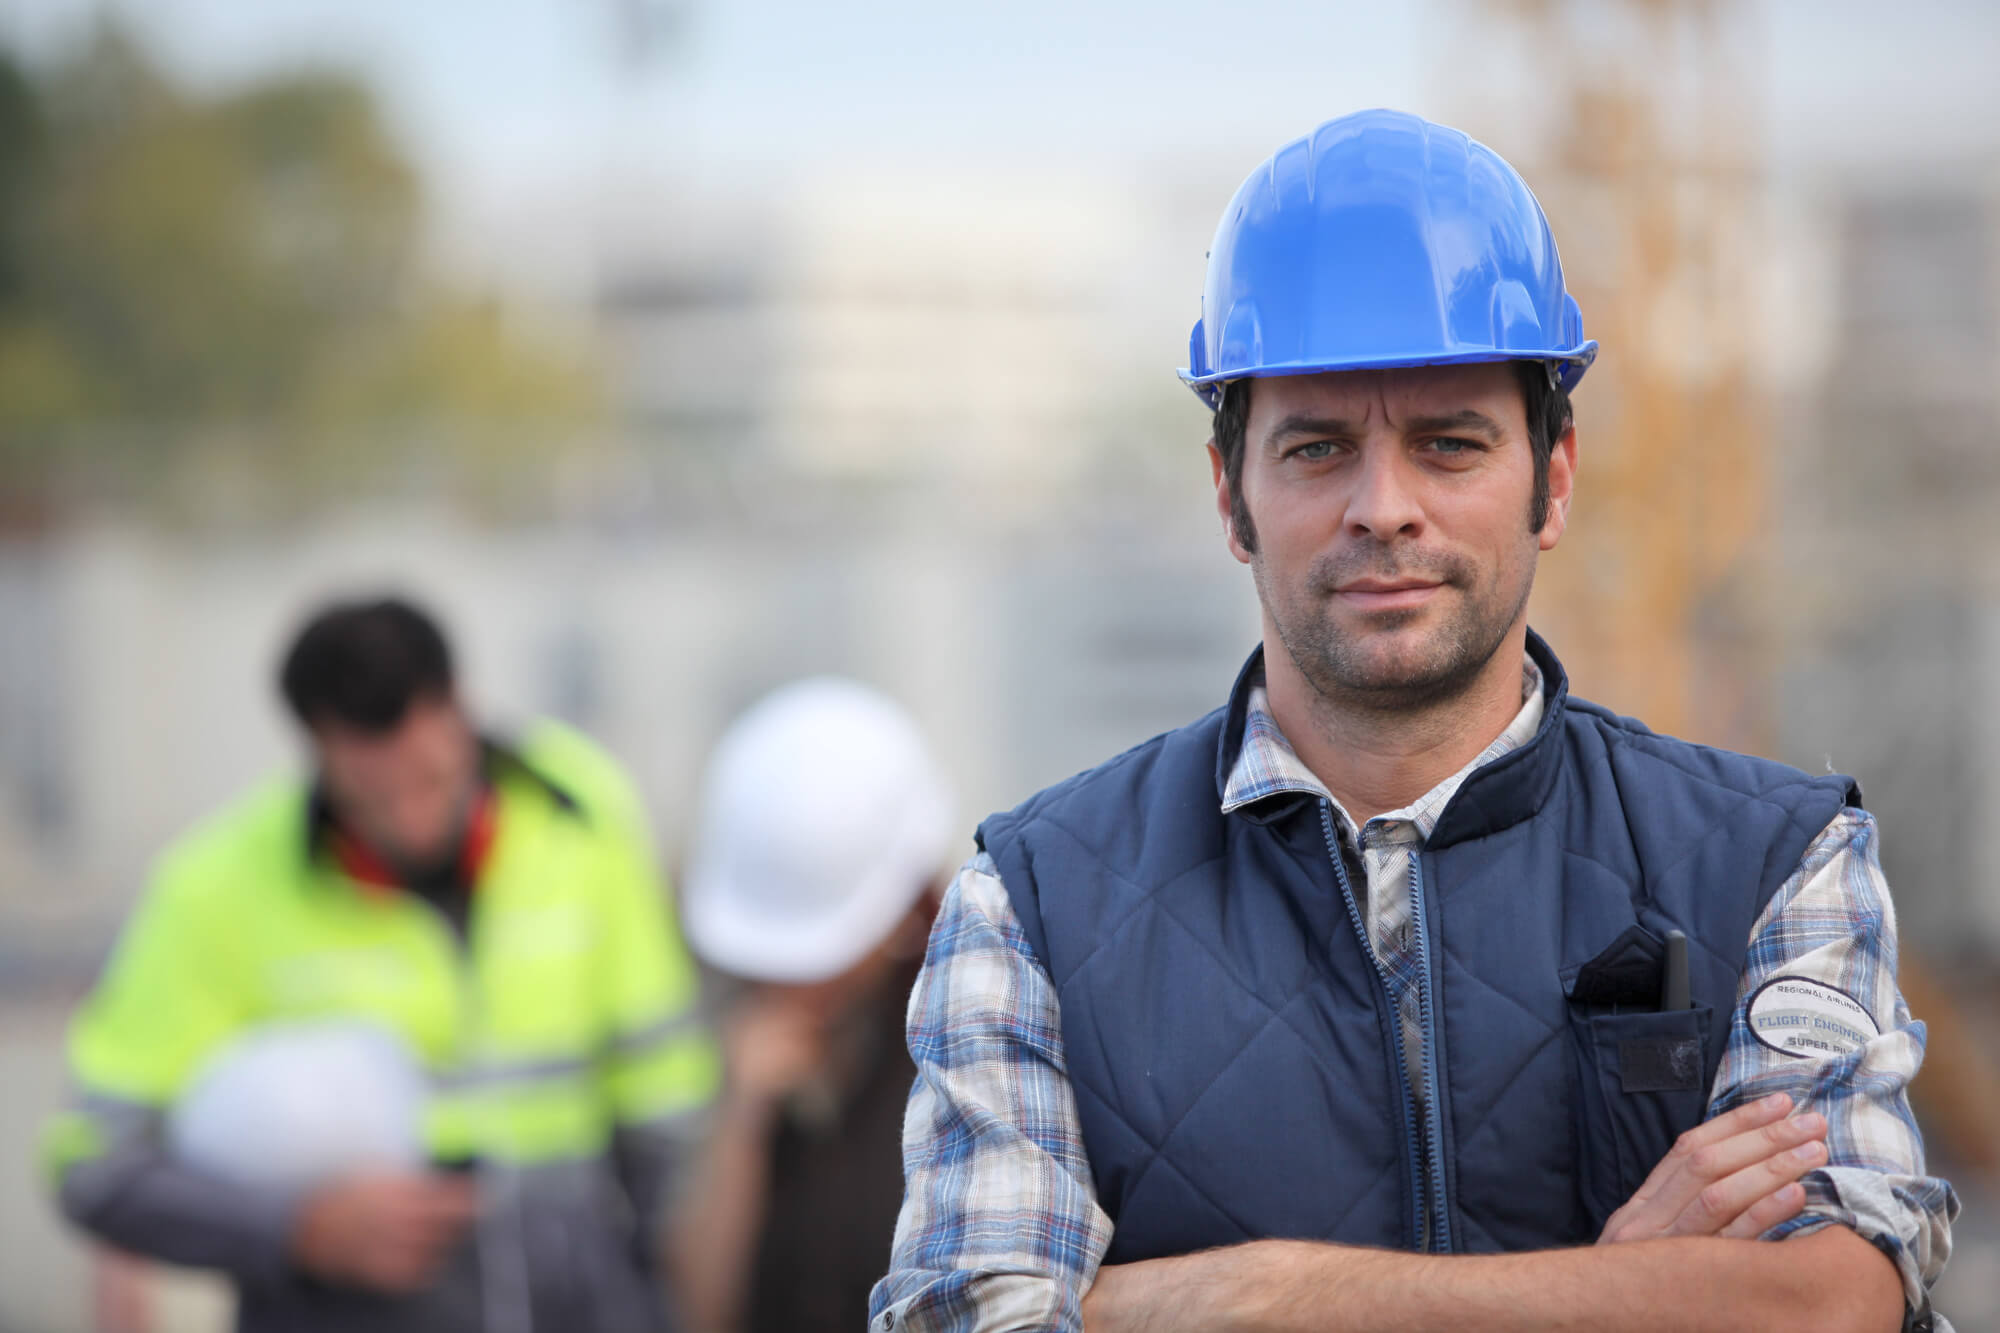 Why You Should Run a Background Check on Your Contractor